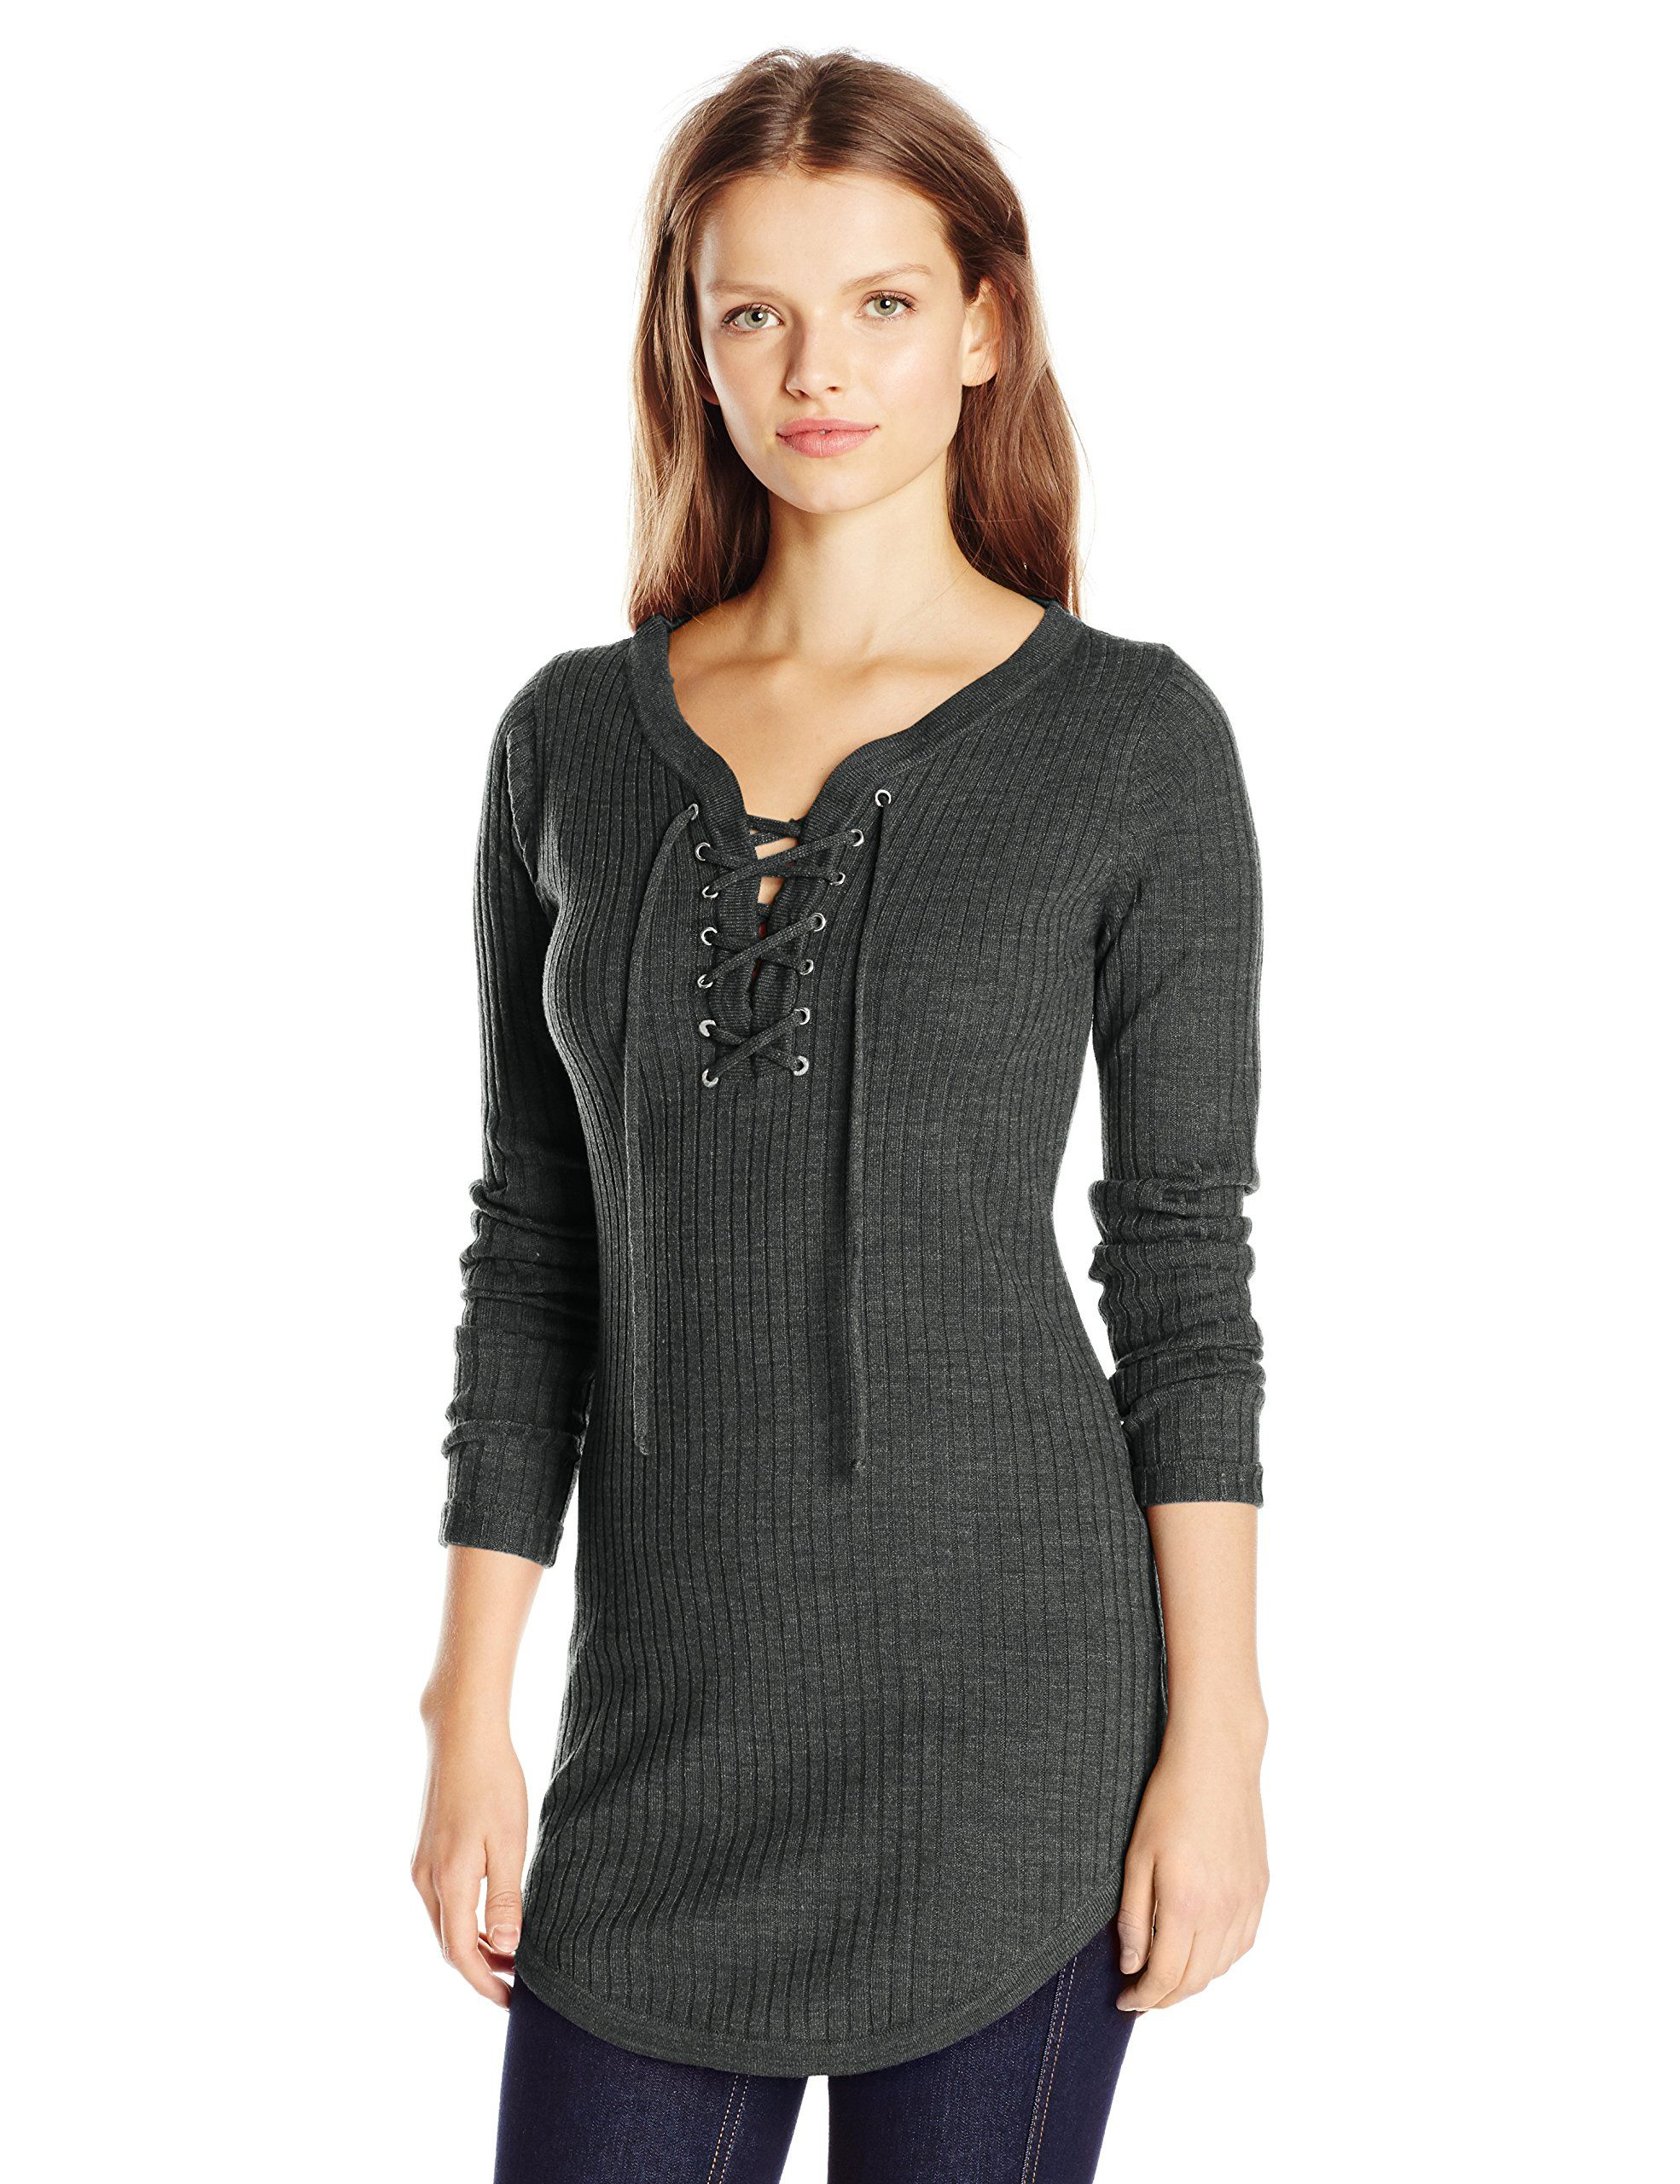 Derek Heart Juniors Rib Tunic Sweater Dress with Lace up Neck ...